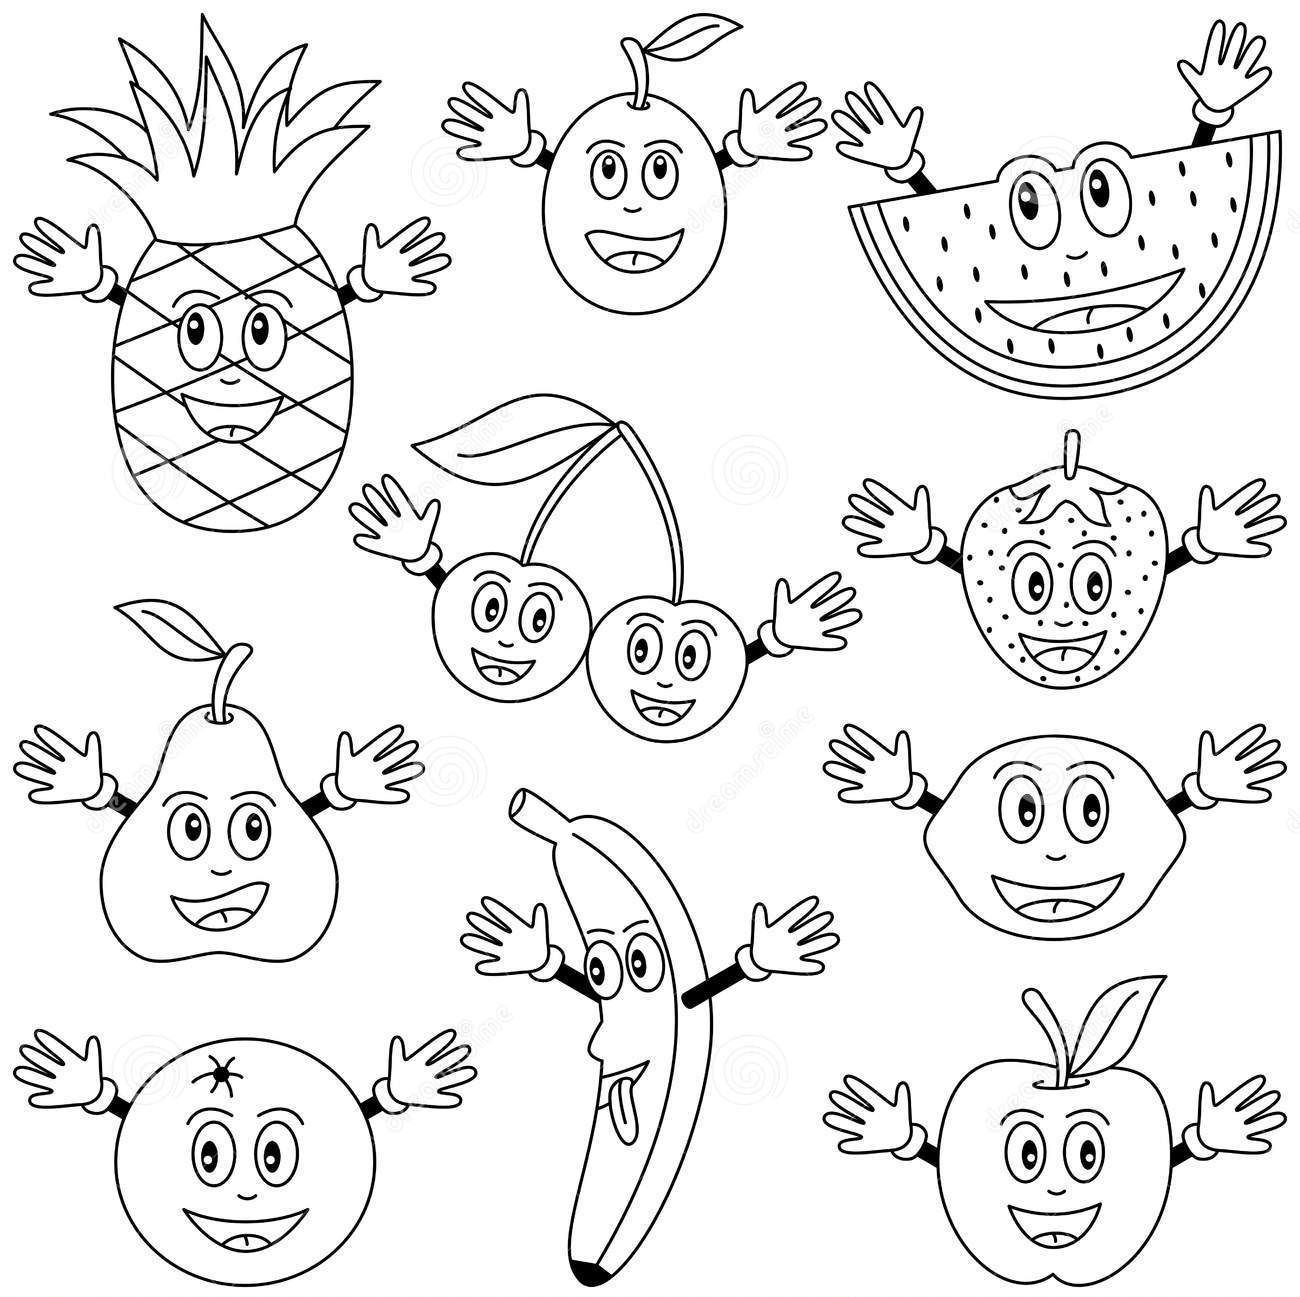 Fruits Printables Best Coloring Page - Coloring Pages XL